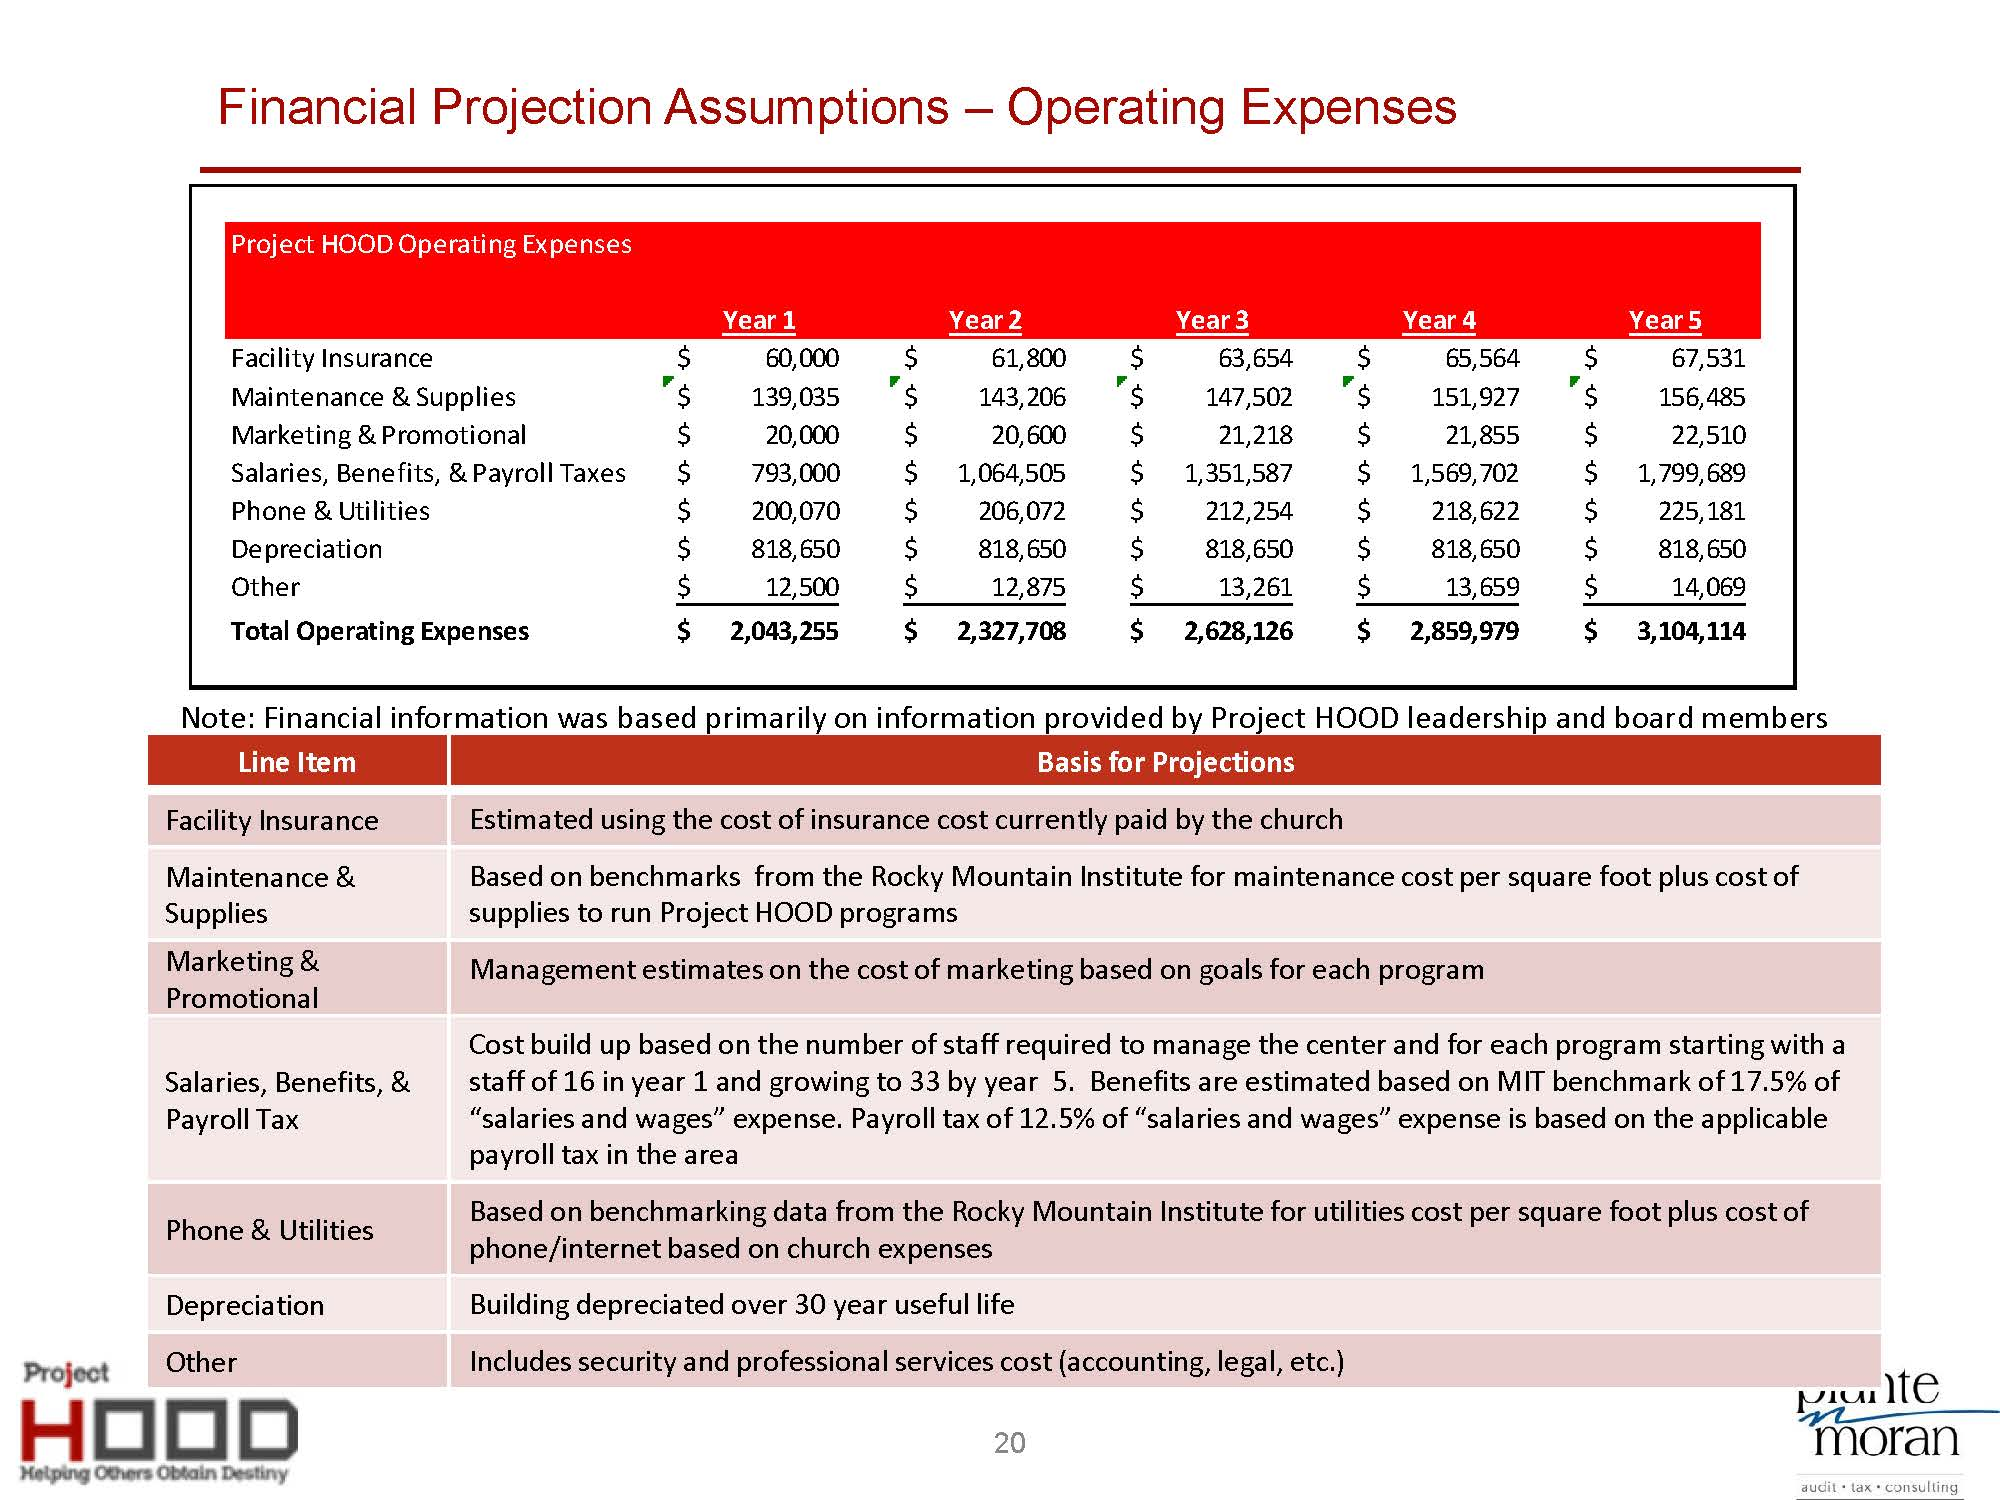 Project HOOD Community Center Business Plan_8-5_Page_20.jpg